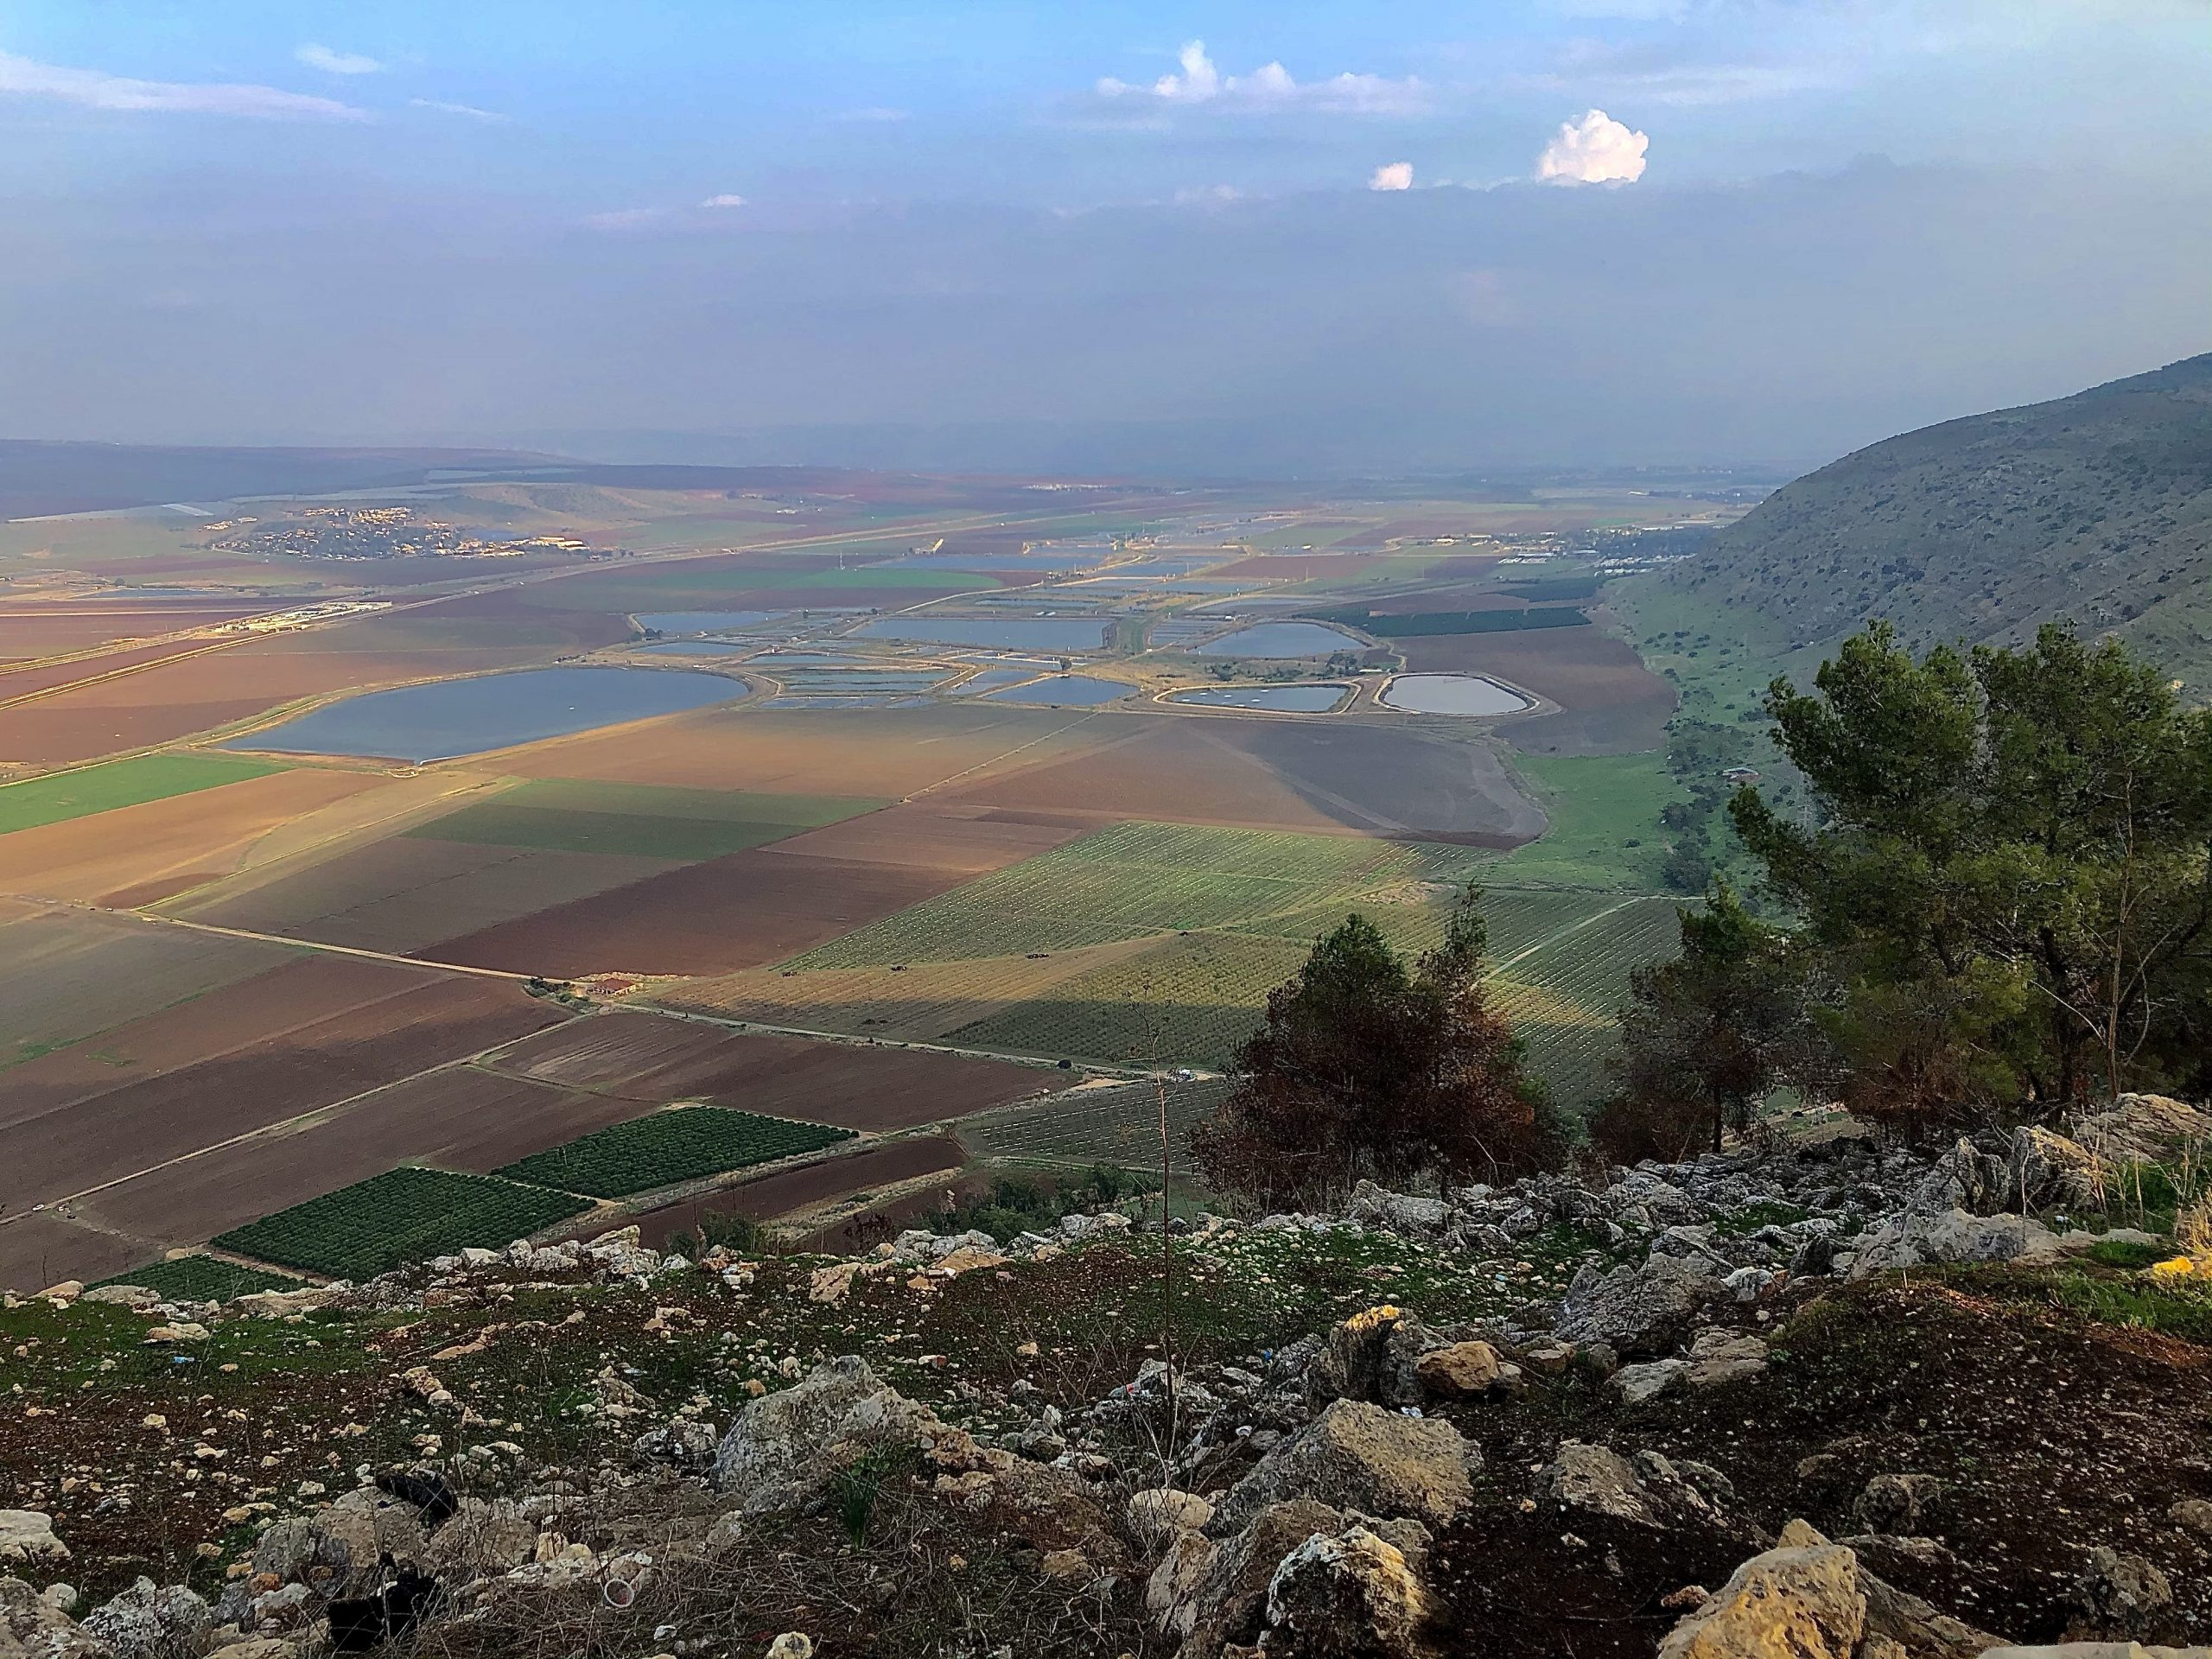 Jezreel Valley also known as the Valley of Megiddo